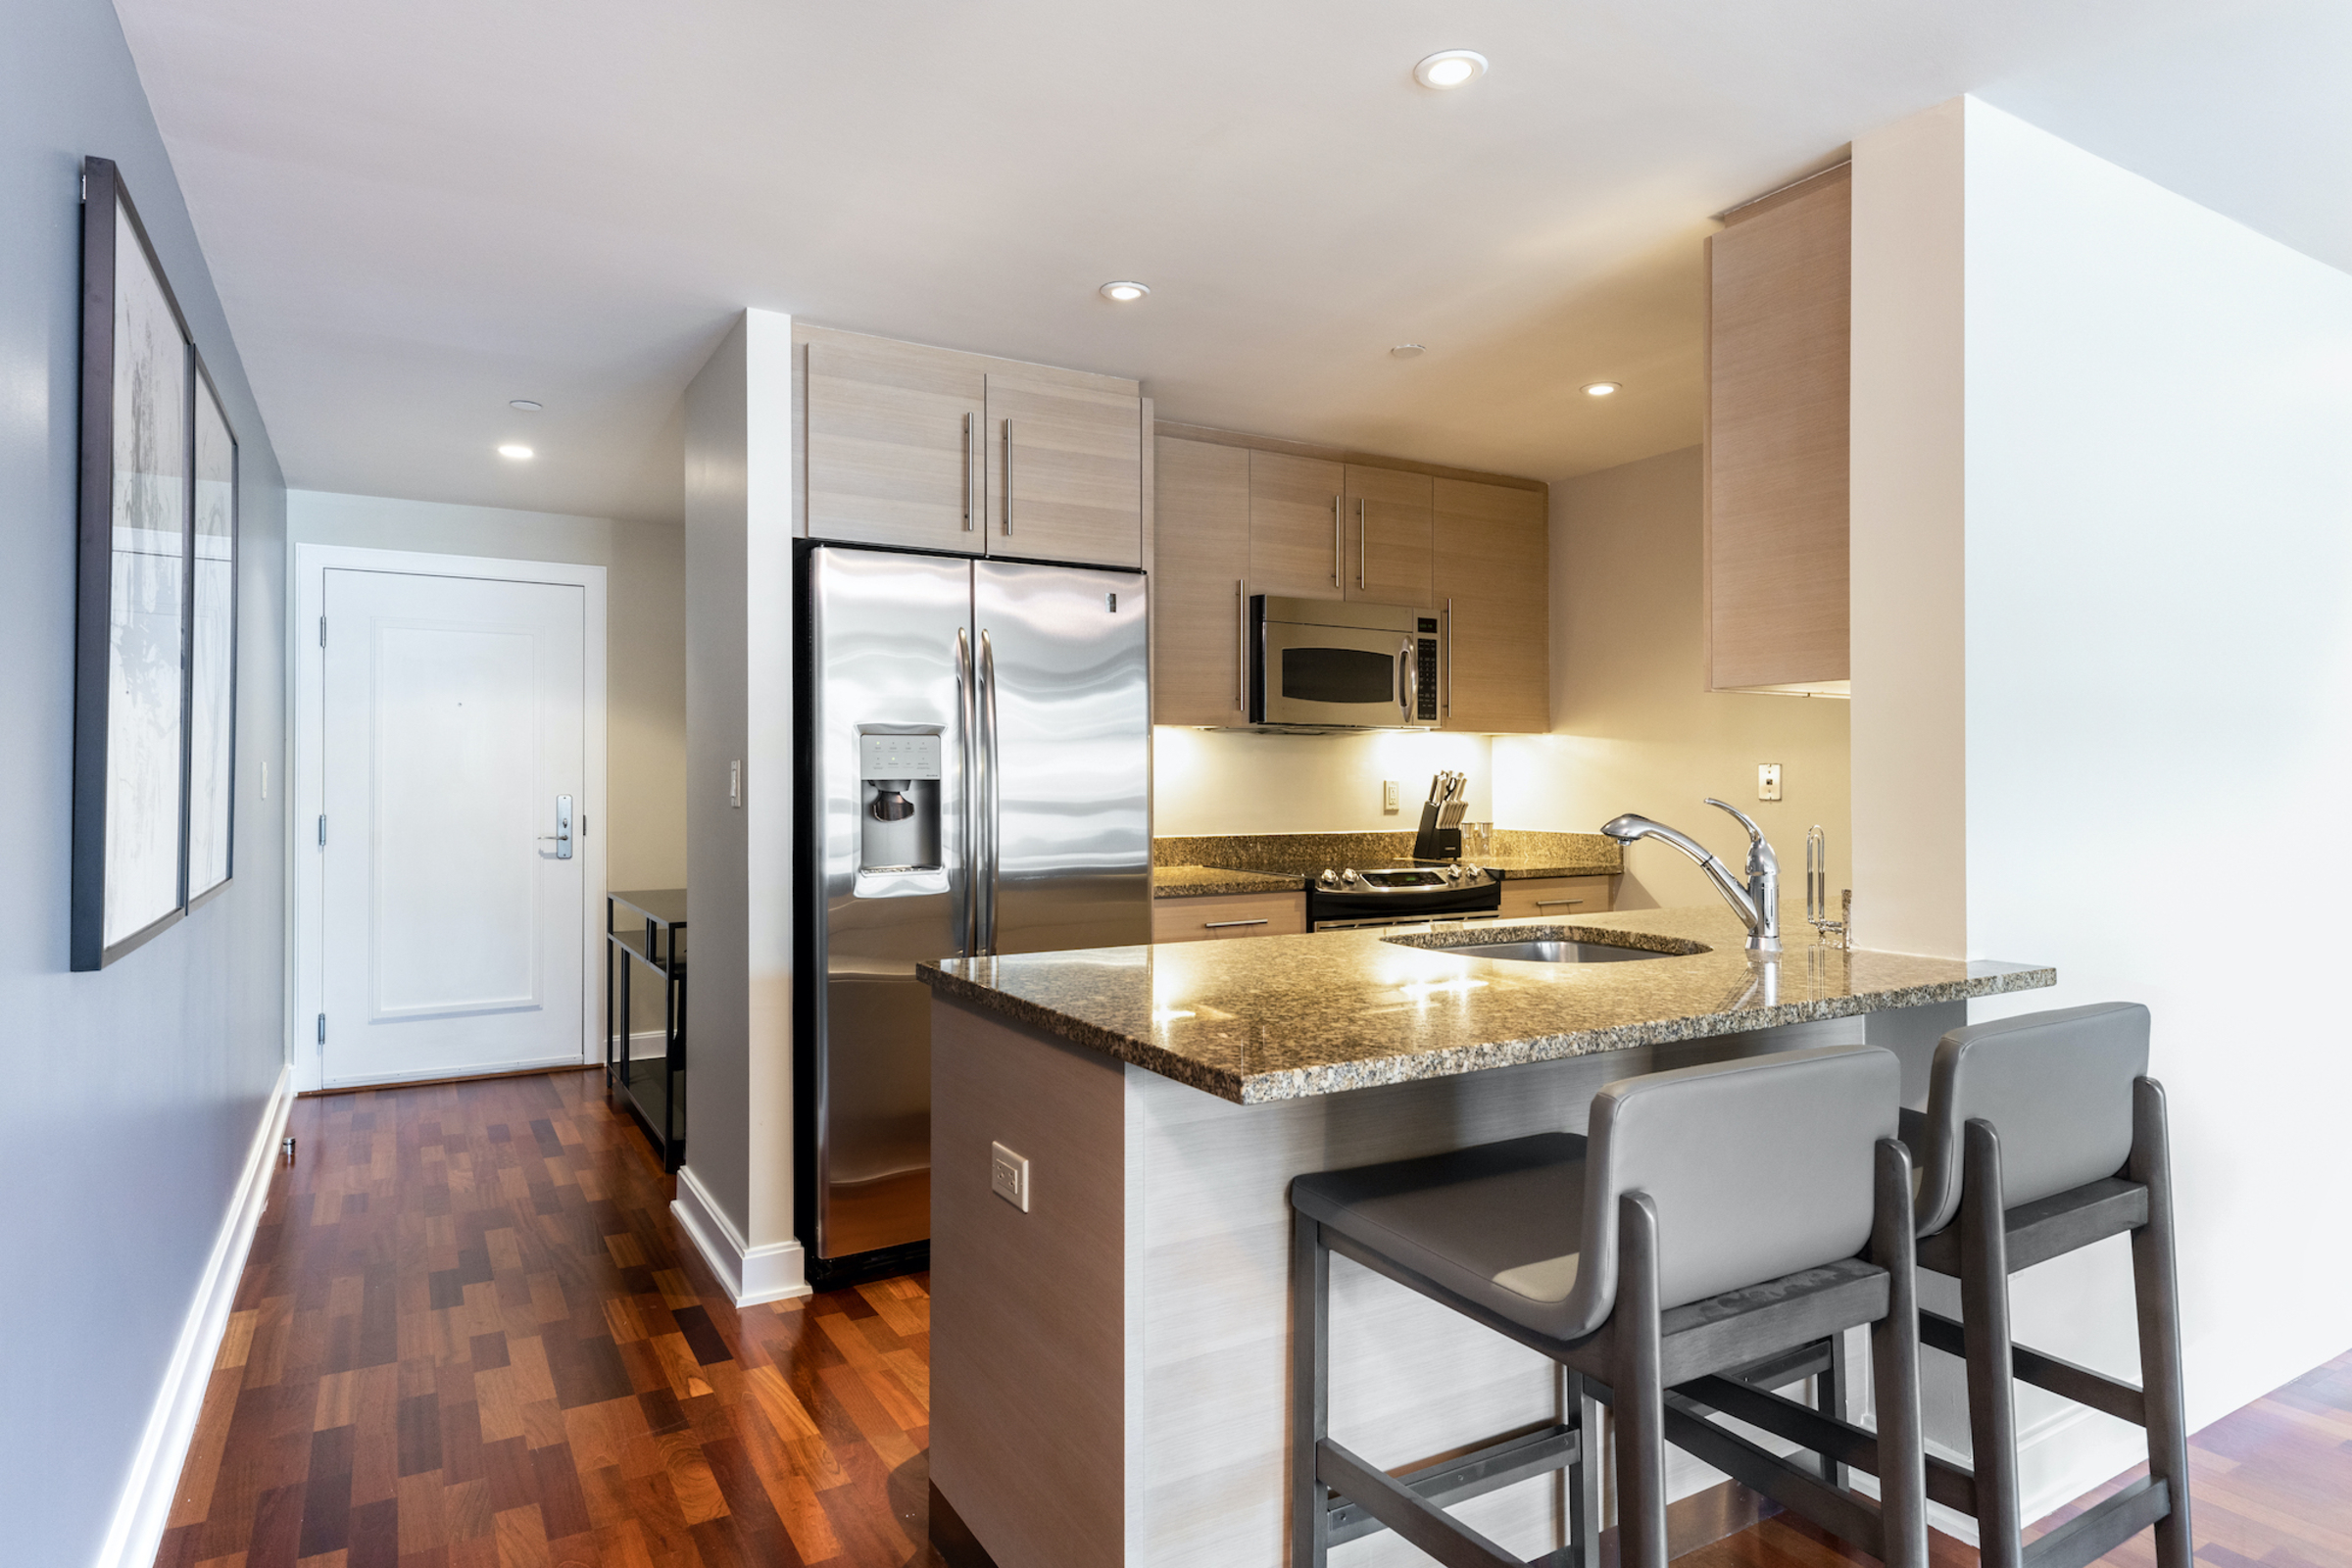 Grant St Apartments for rent